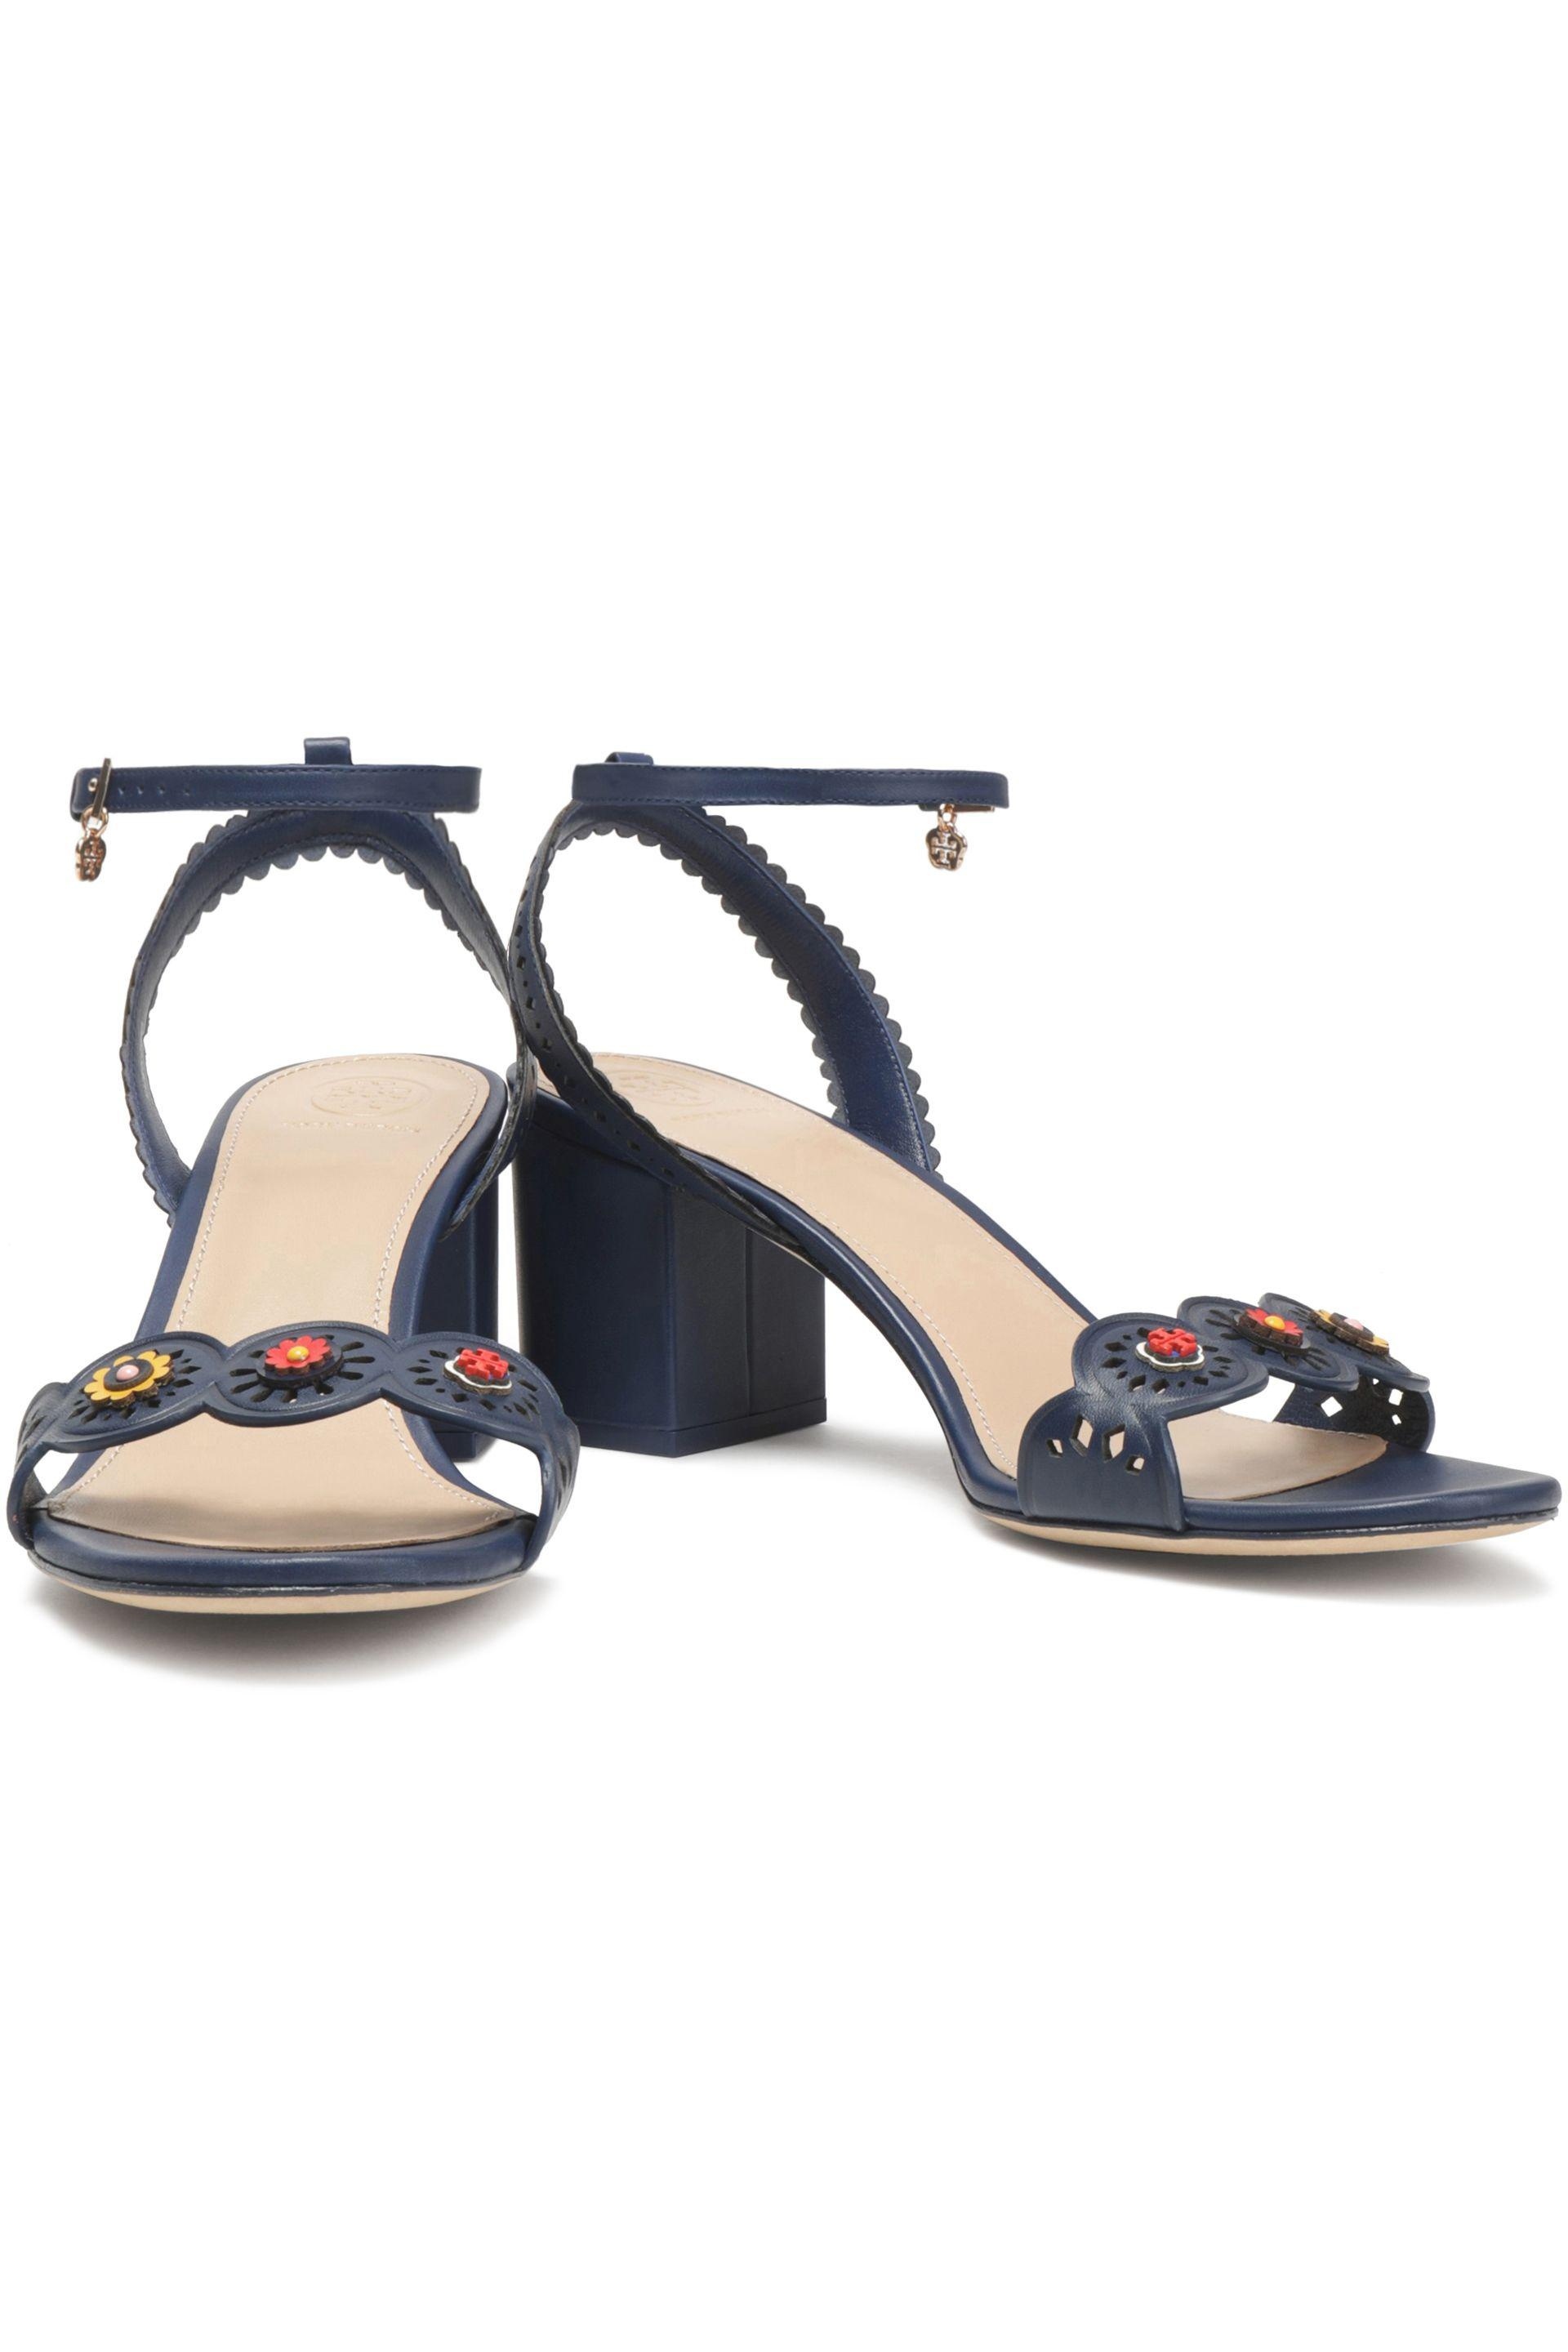 8807f5fdb7d Tory Burch Leather Marguerite Sandals in Blue - Lyst